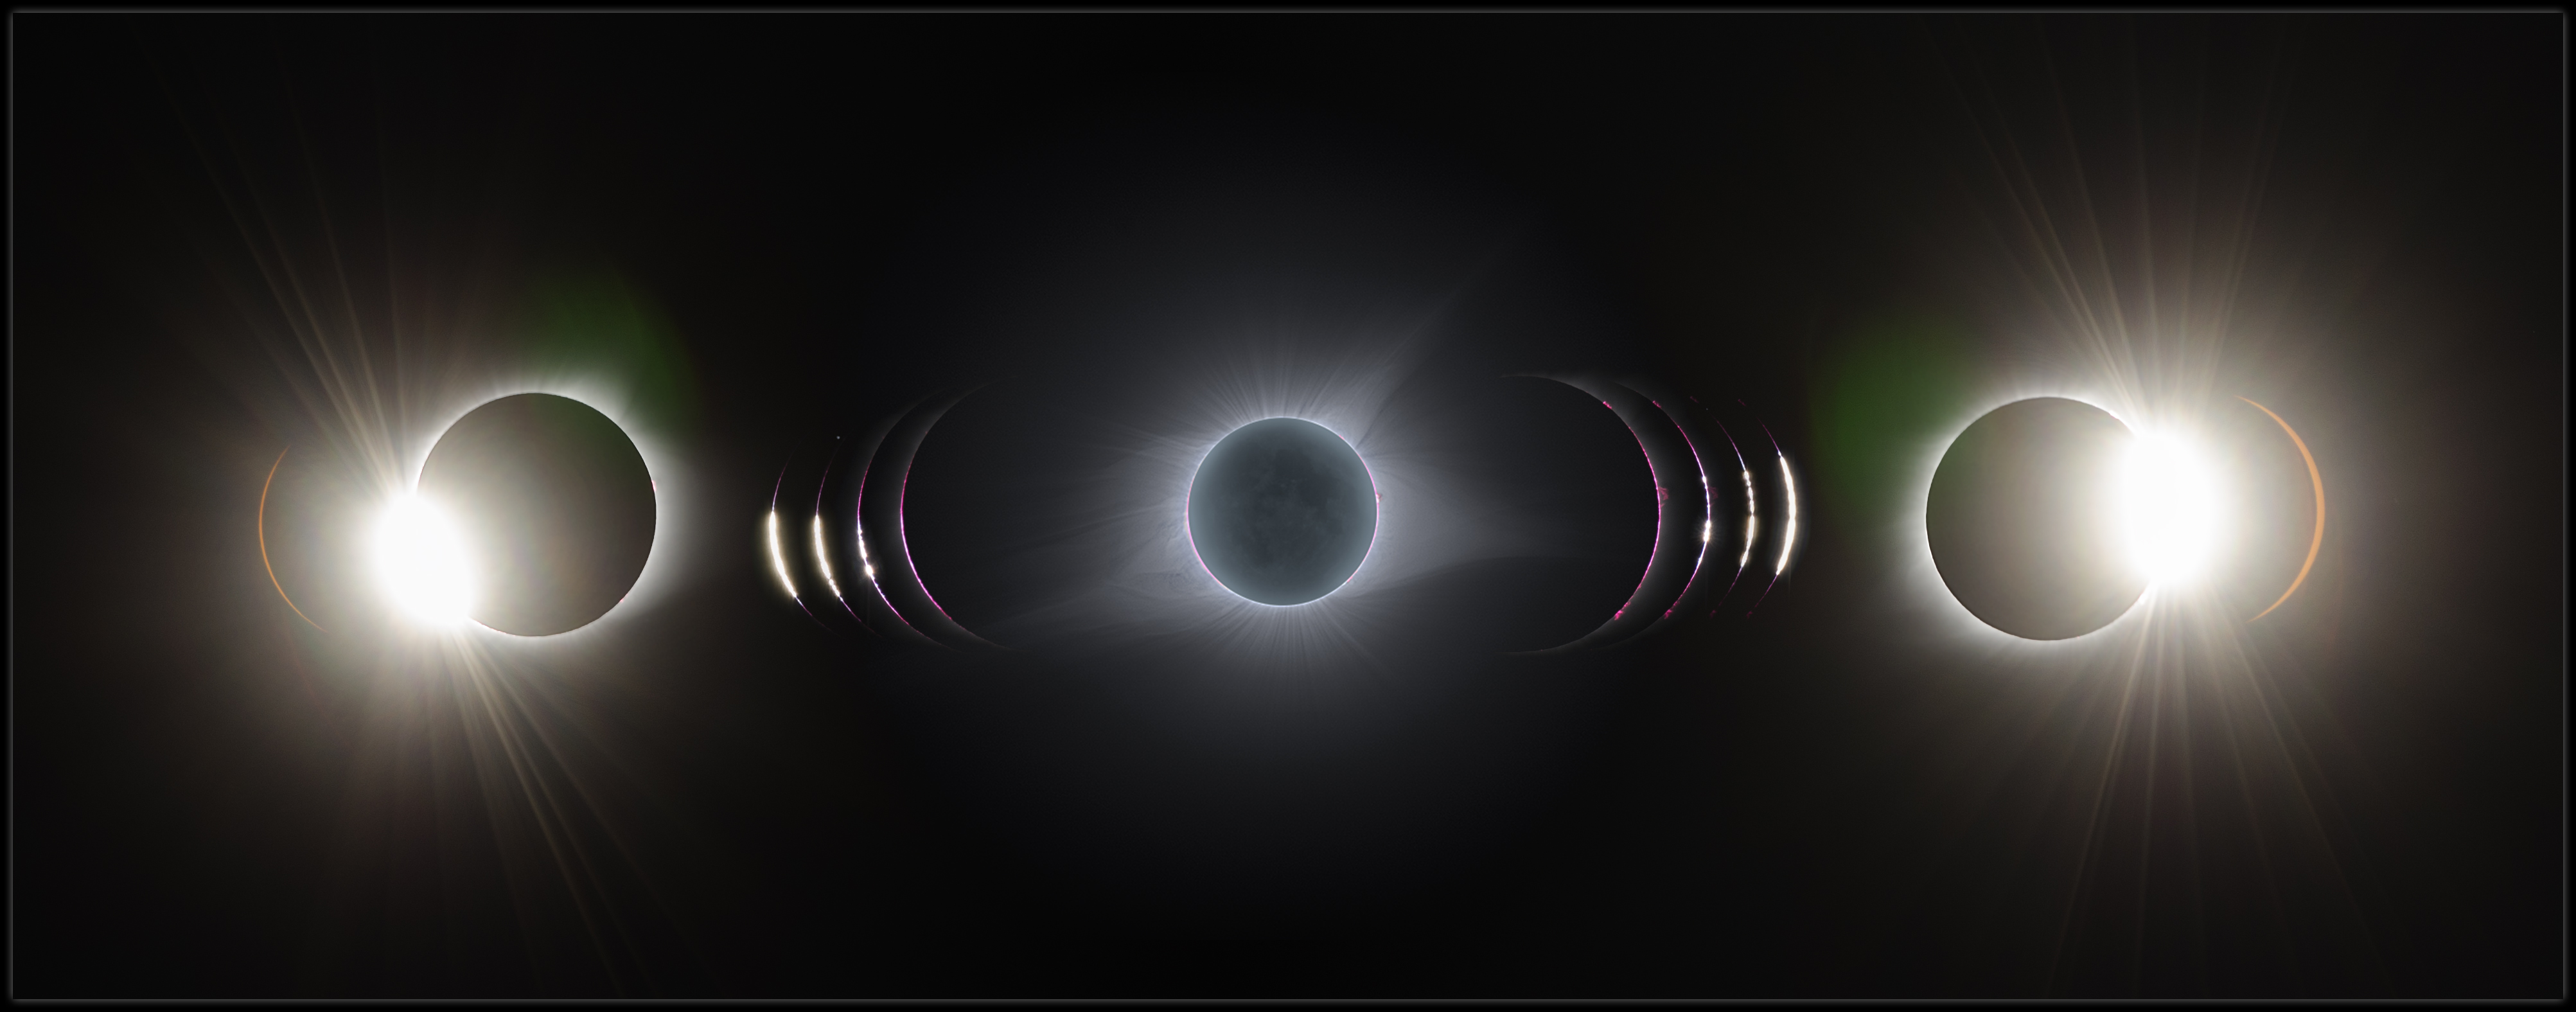 Total Eclipse 2017 – The experience